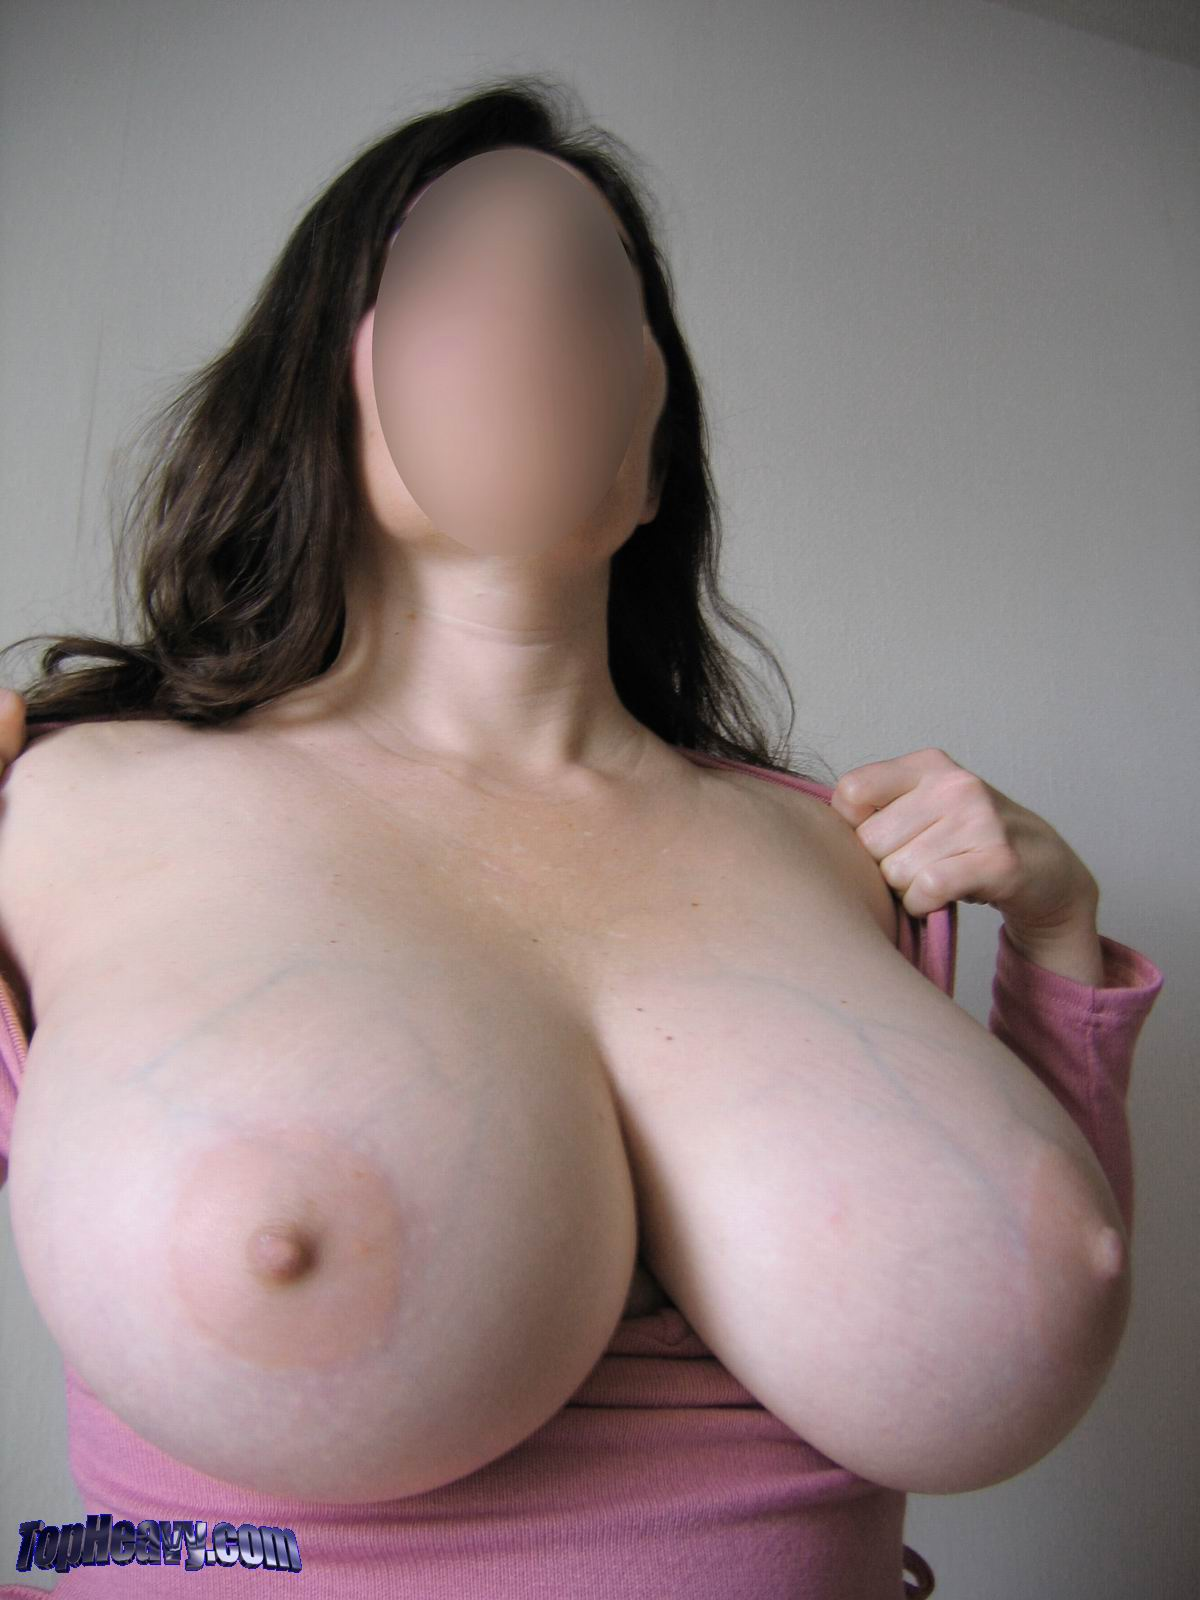 cassidy top heavy amateurs